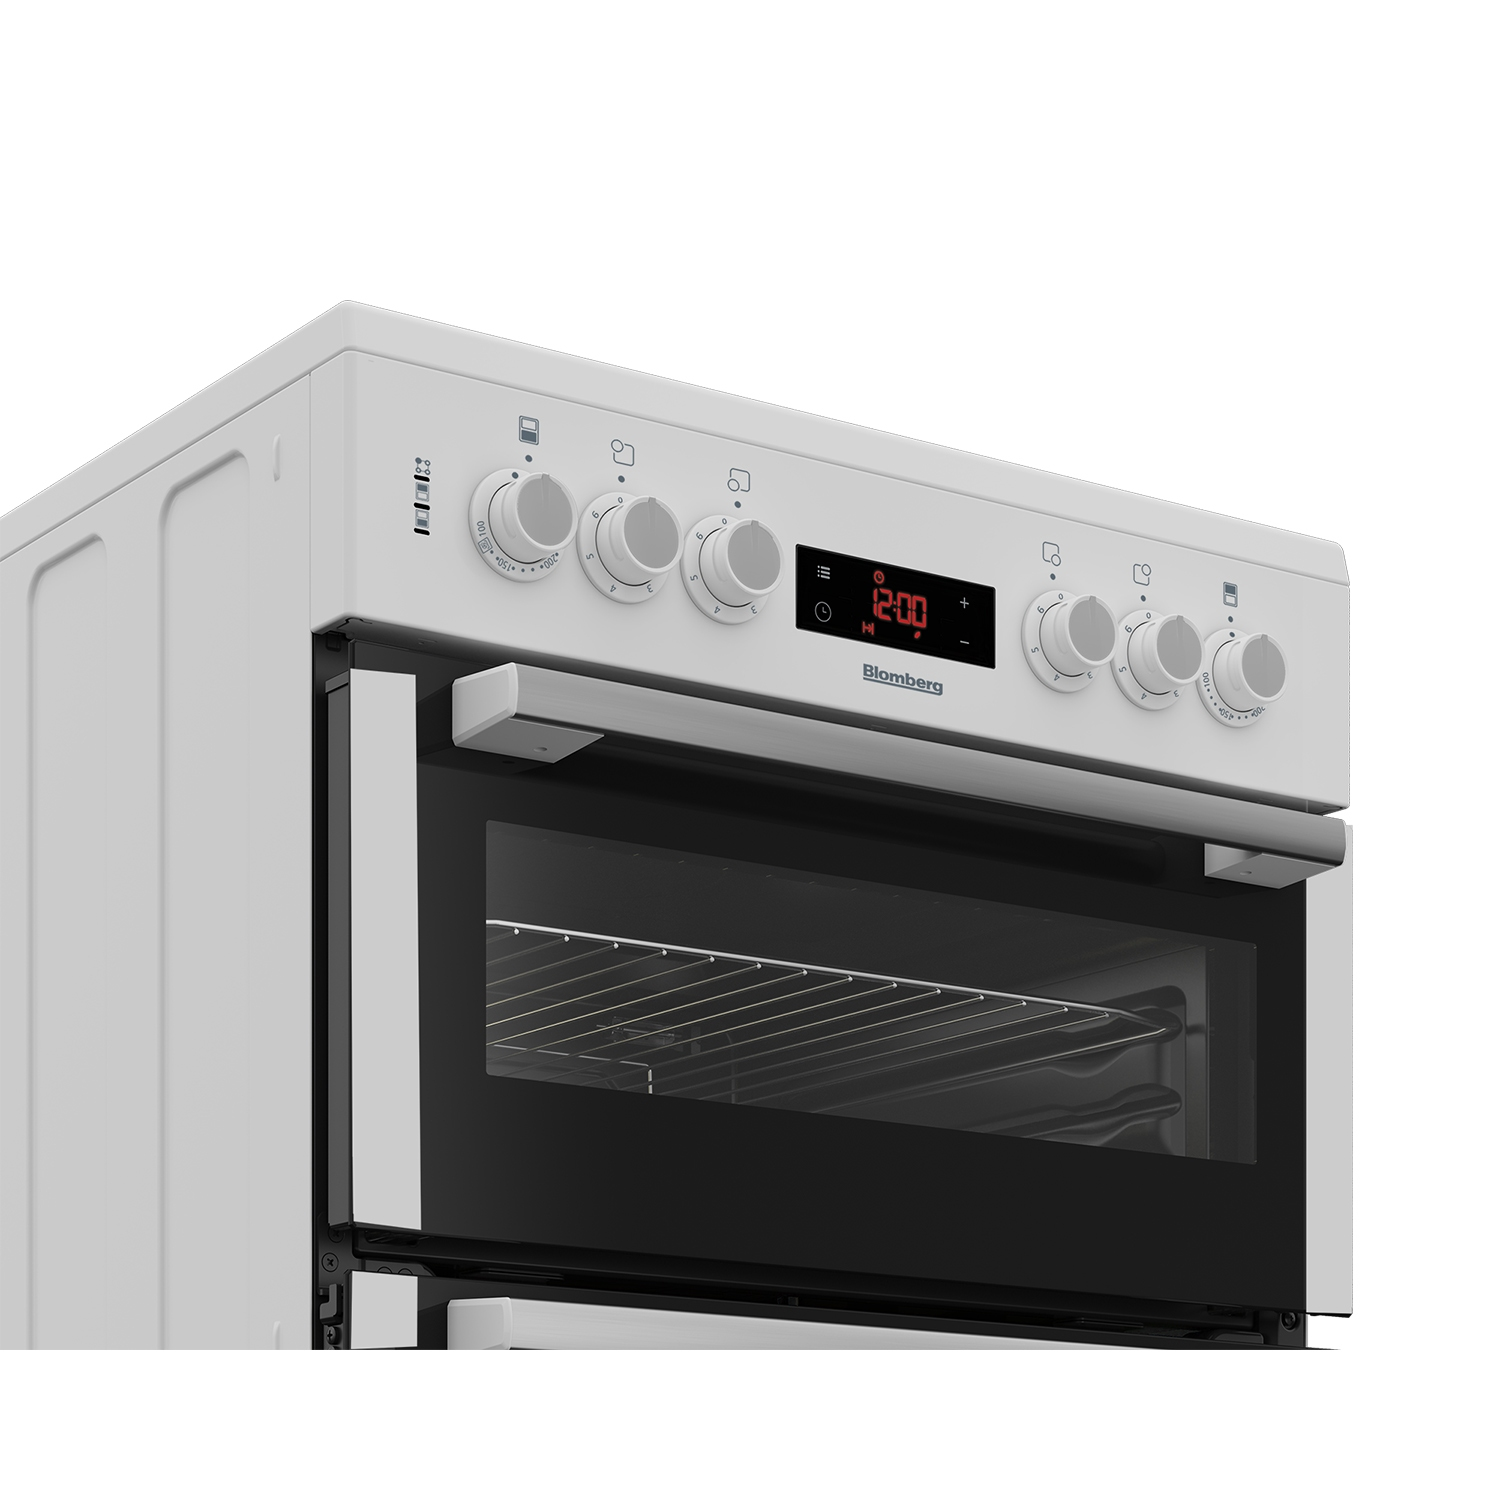 Blomberg 60cm Double Oven Electric Cooker with Ceramic Hob - White  - 1